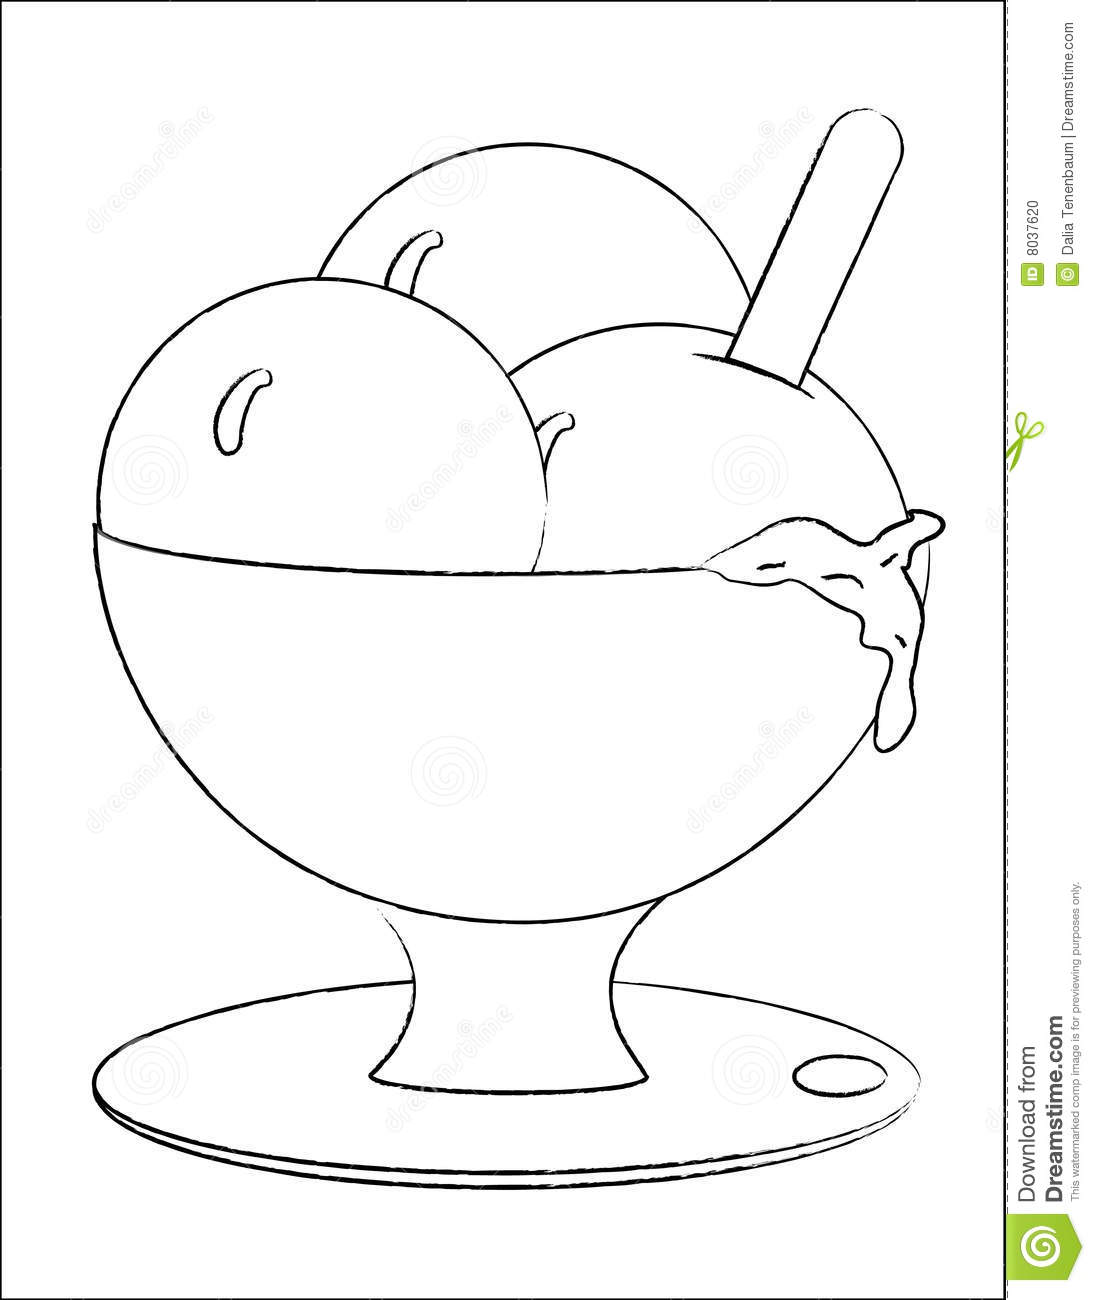 Ice cream in a bowl stock vector. Illustration of doodle - 8037620 for Bowl Of Ice Cream Clipart Black And White  56bof